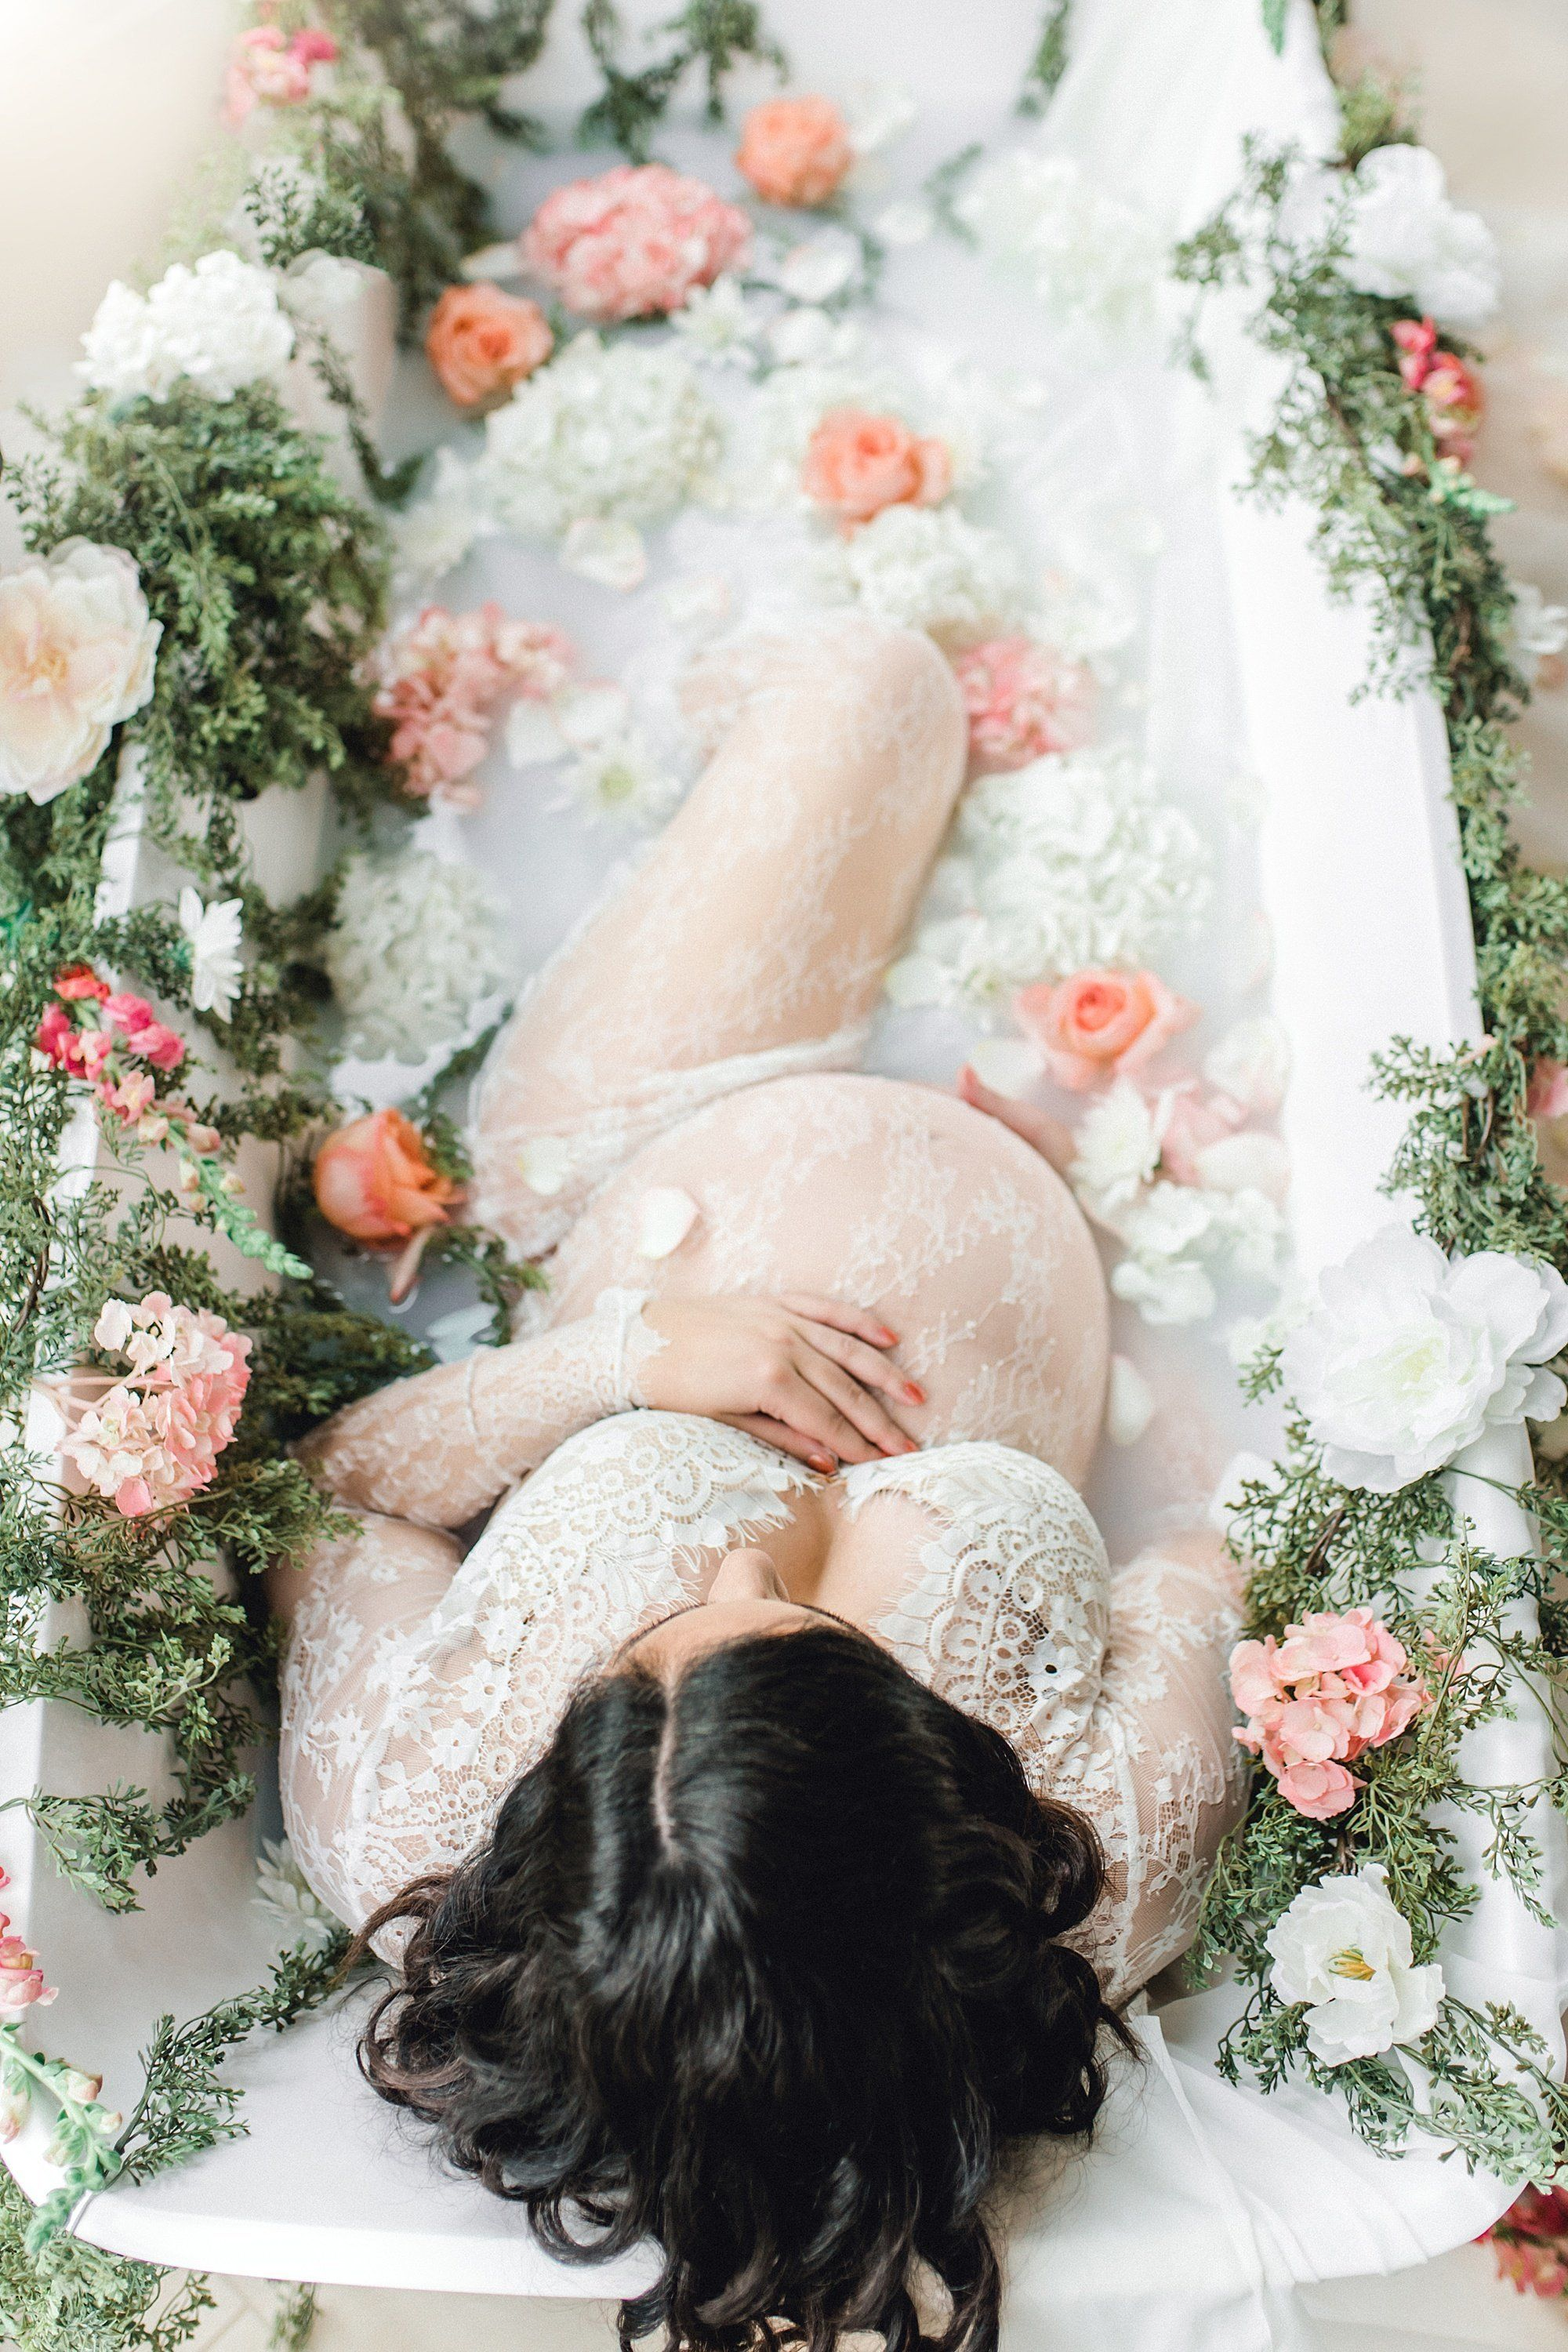 What S The Deal With Milk Bath Maternity Photos Huffpost Life